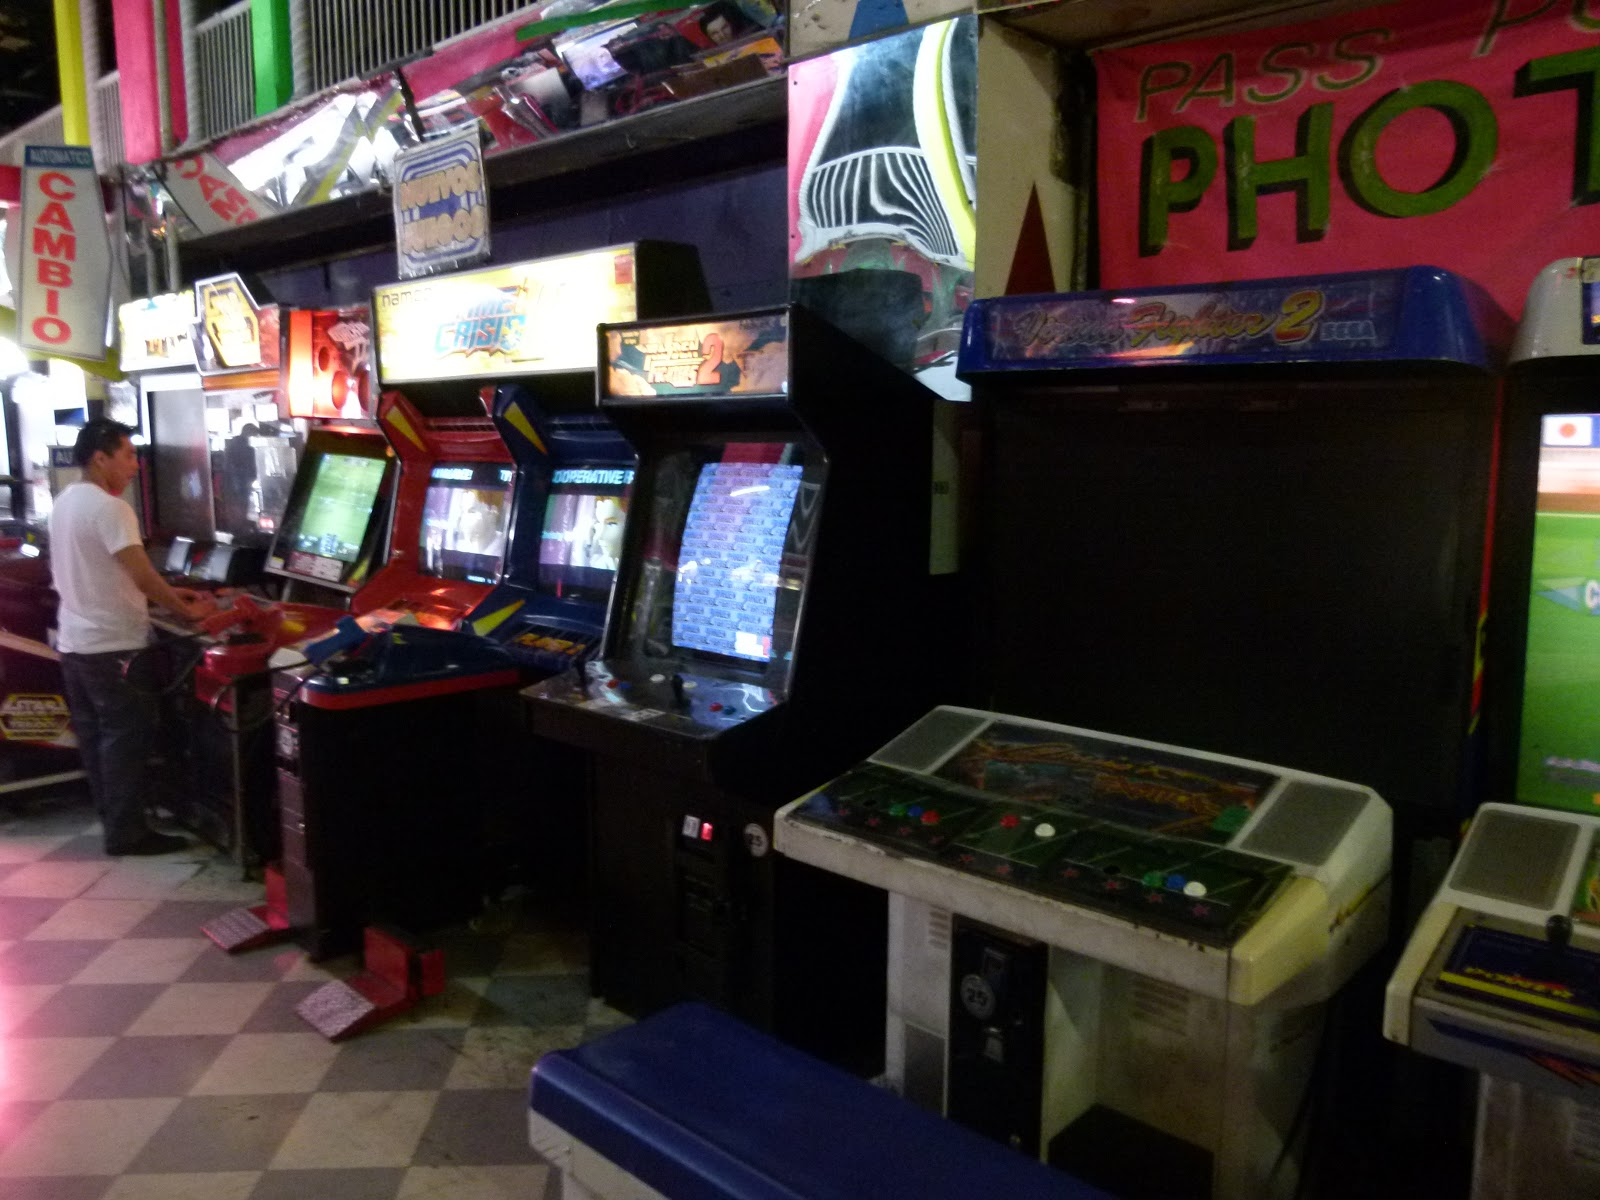 Things To Do In Los Angeles: Arcades in LA: Sassony Arcade